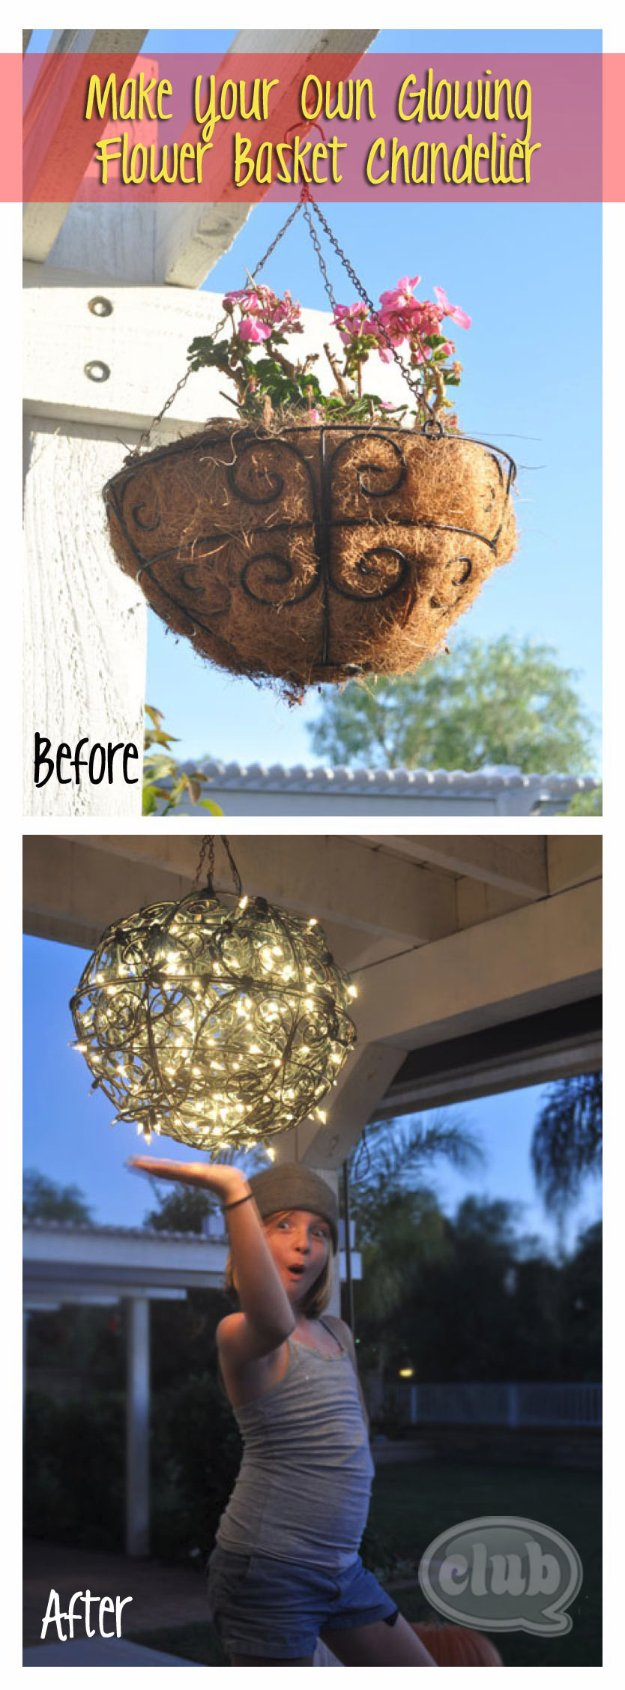 DIY Porch and Patio Ideas - DIY Flower Basket Chandelier - Decor Projects and Furniture Tutorials You Can Build for the Outdoors -Swings, Bench, Cushions, Chairs, Daybeds and Pallet Signs